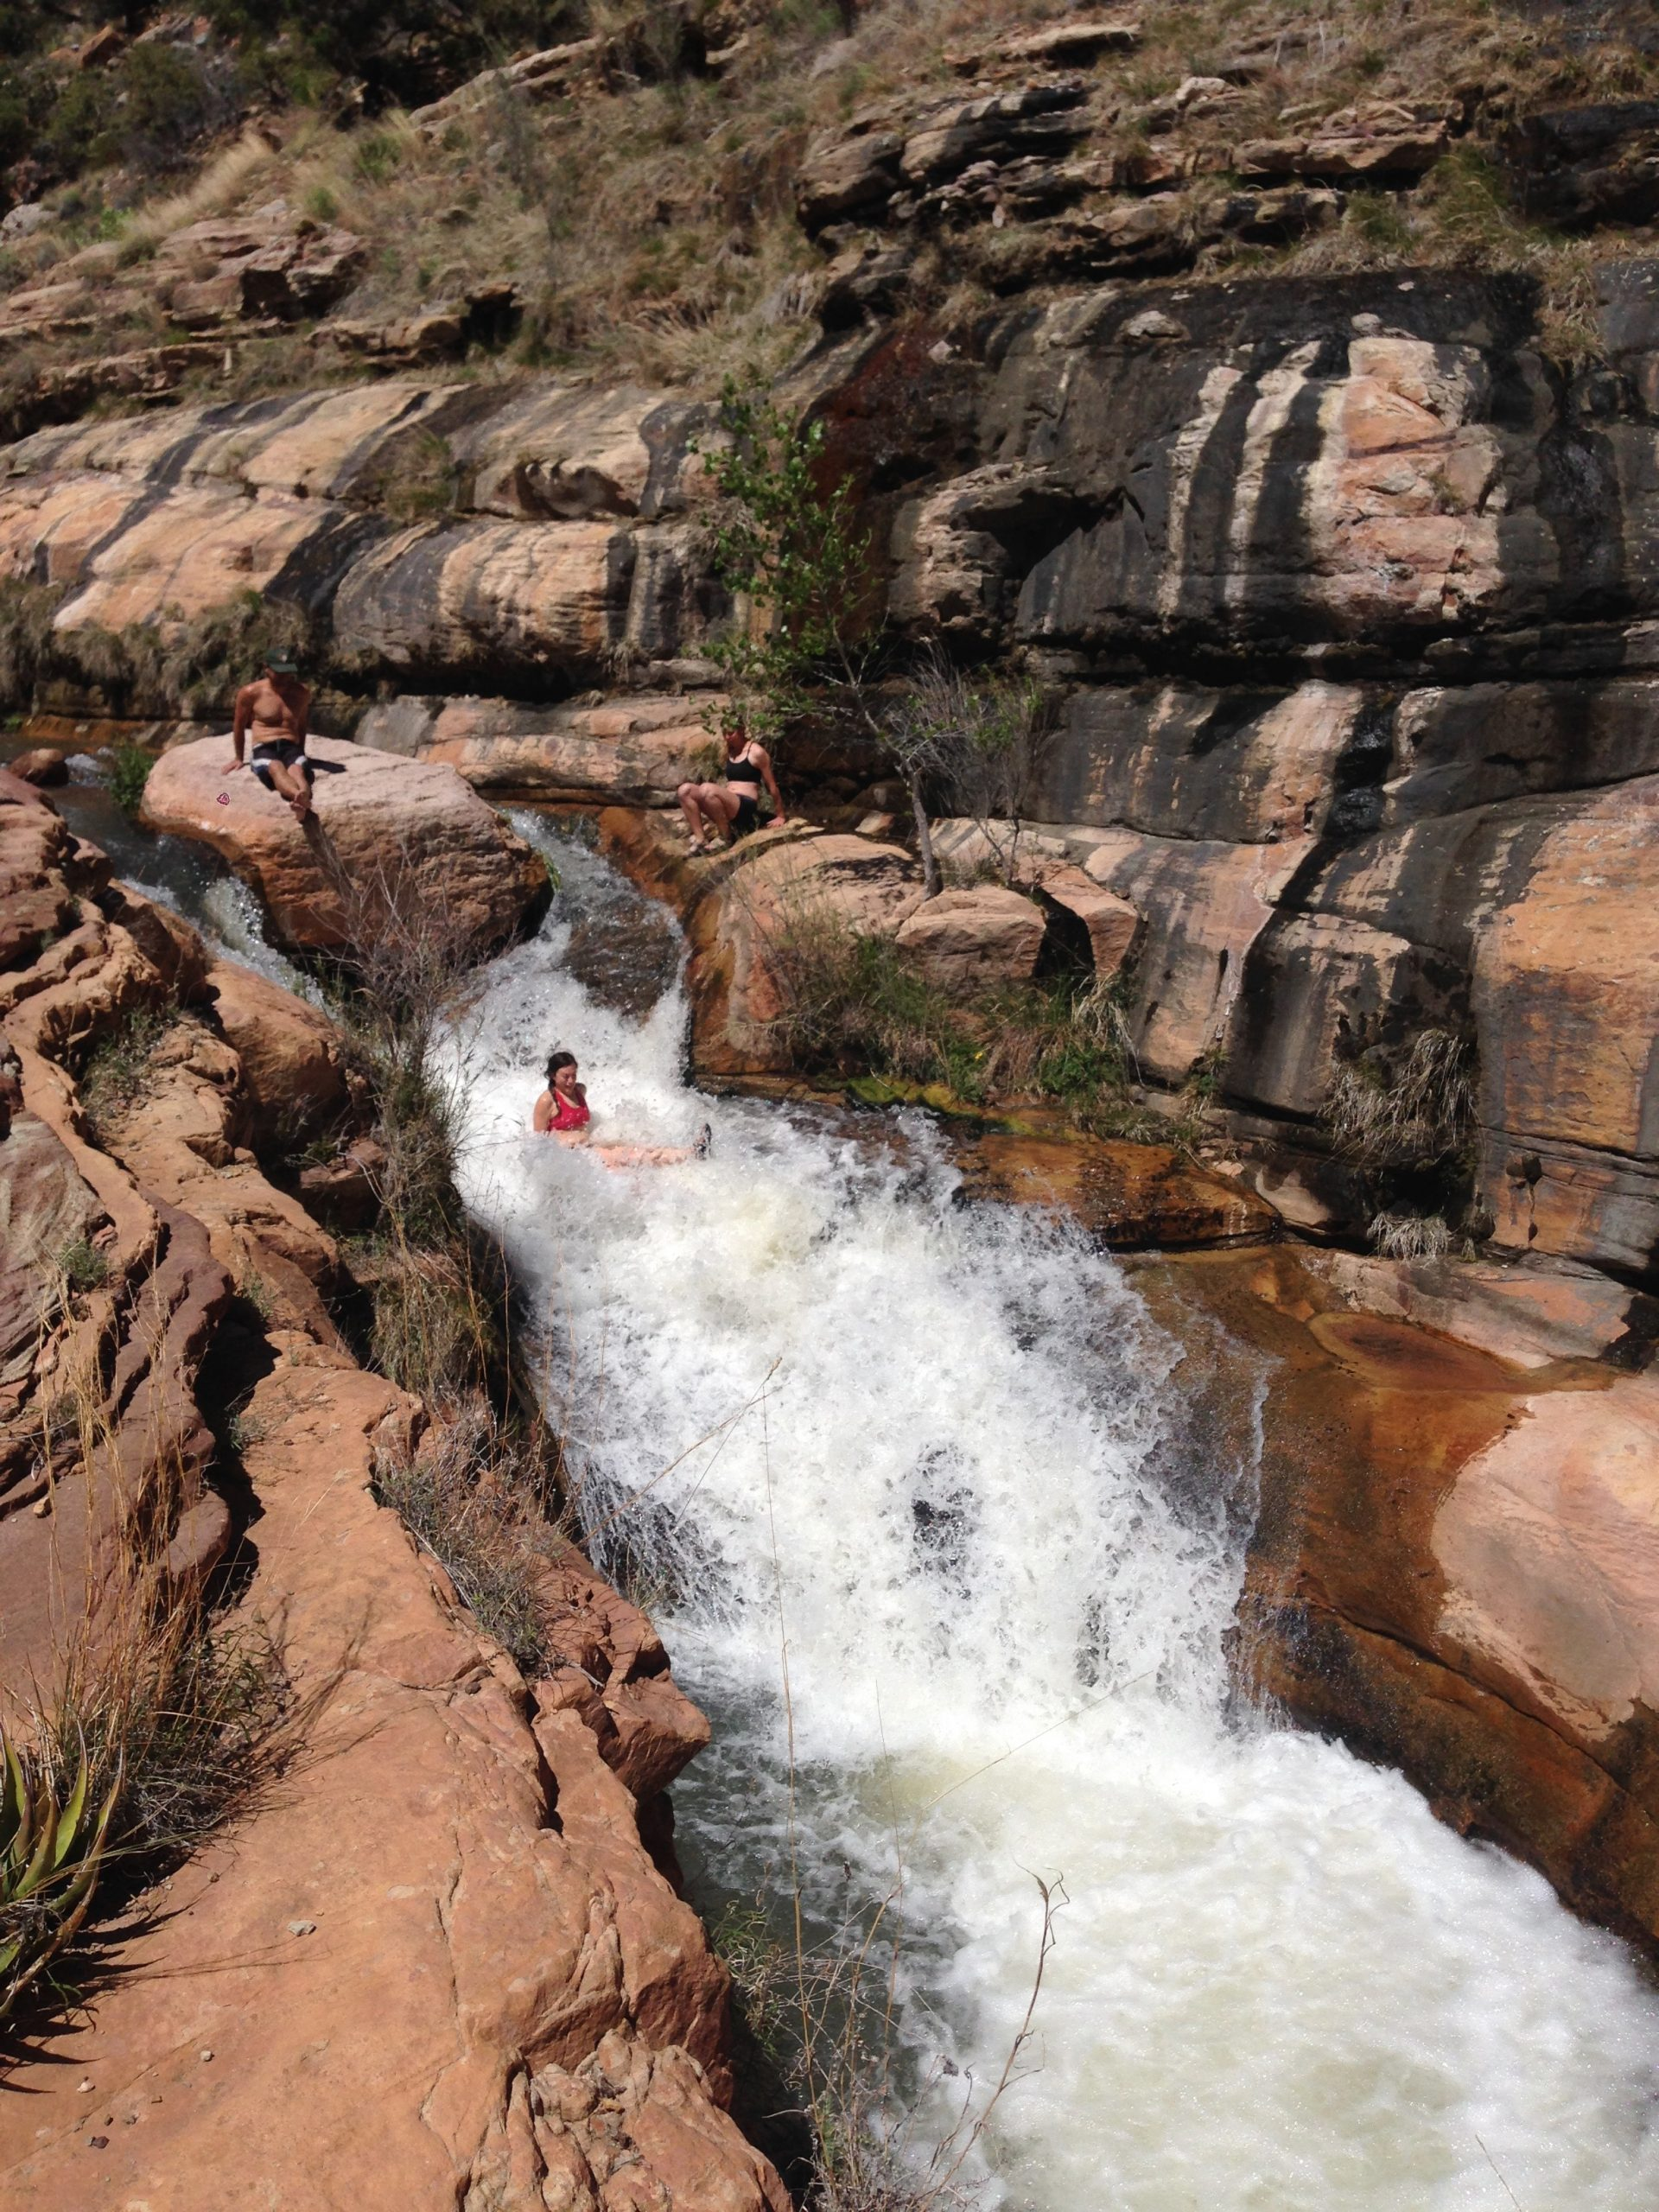 Sliding down a natural water slide in the Grand Canyon